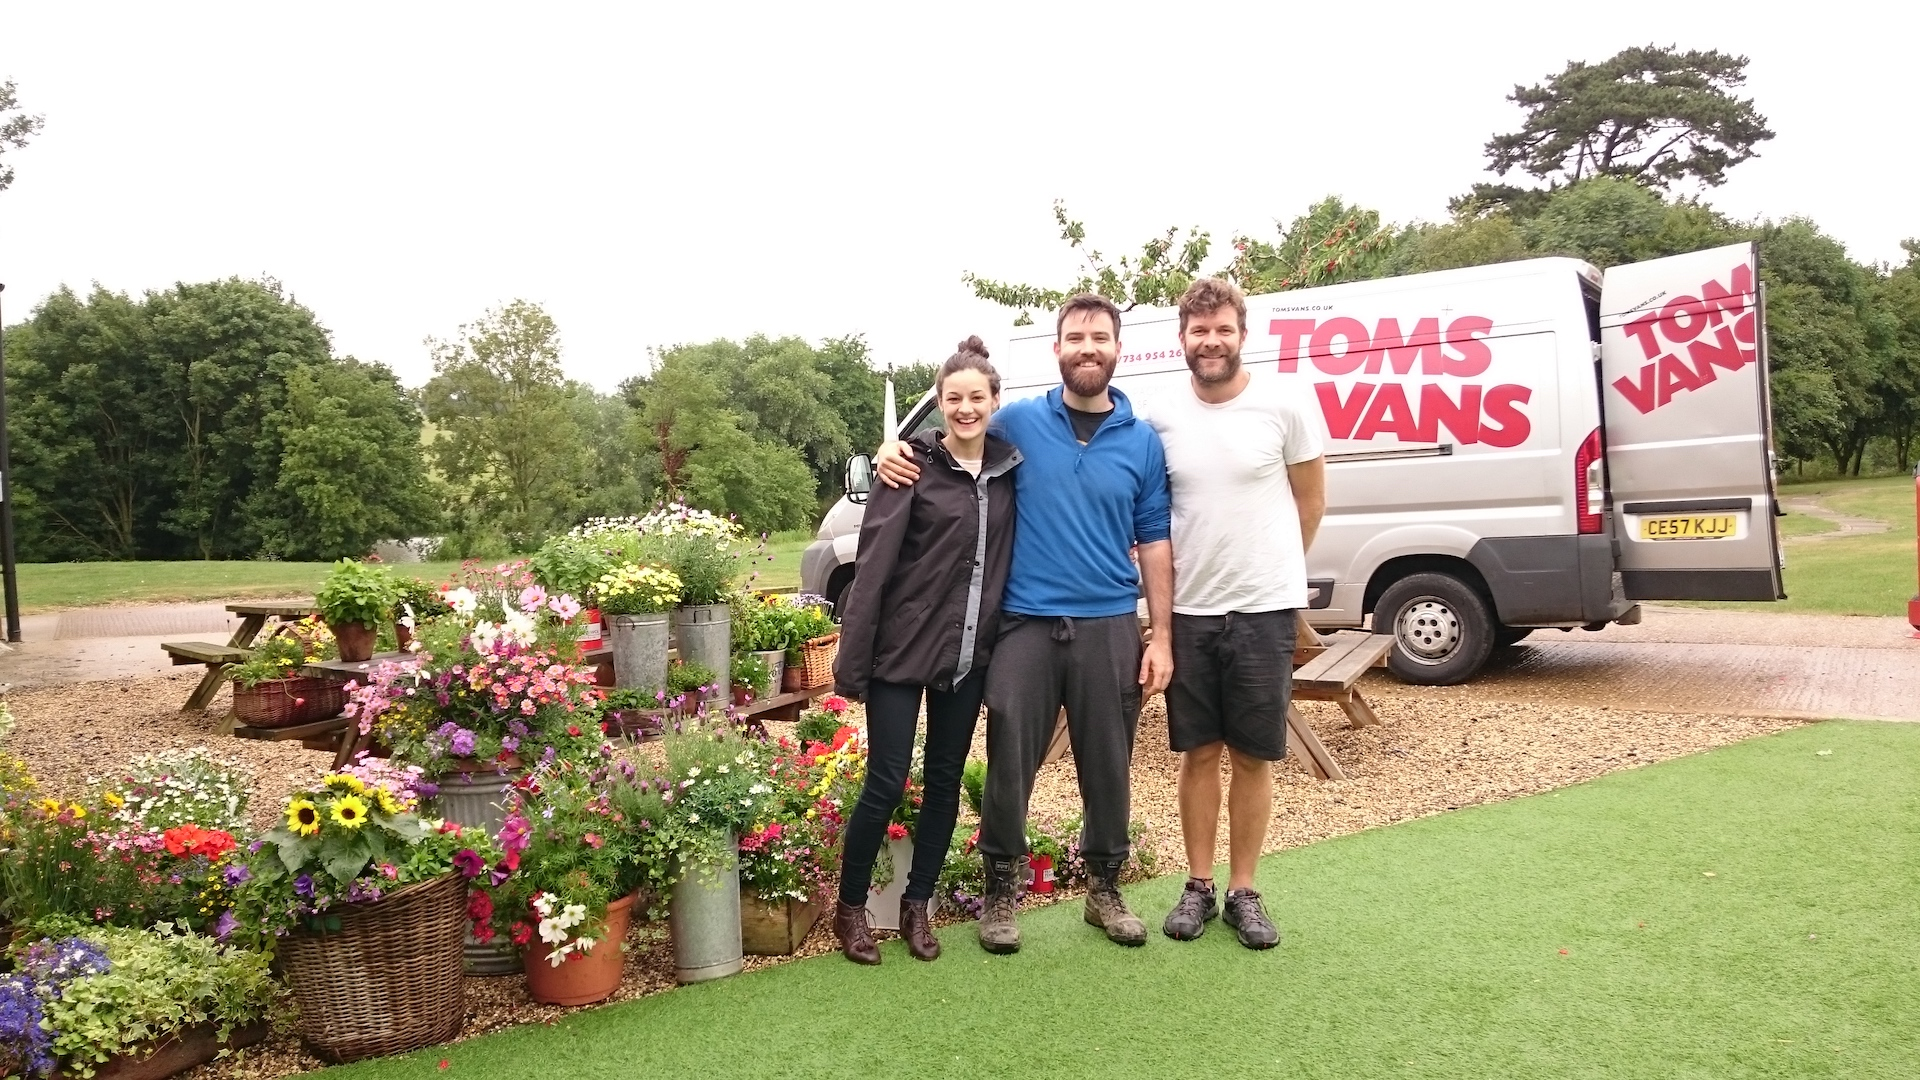 If you're hosting or organising an event in Bristol and need transport contact Tom's Vans Bristol!